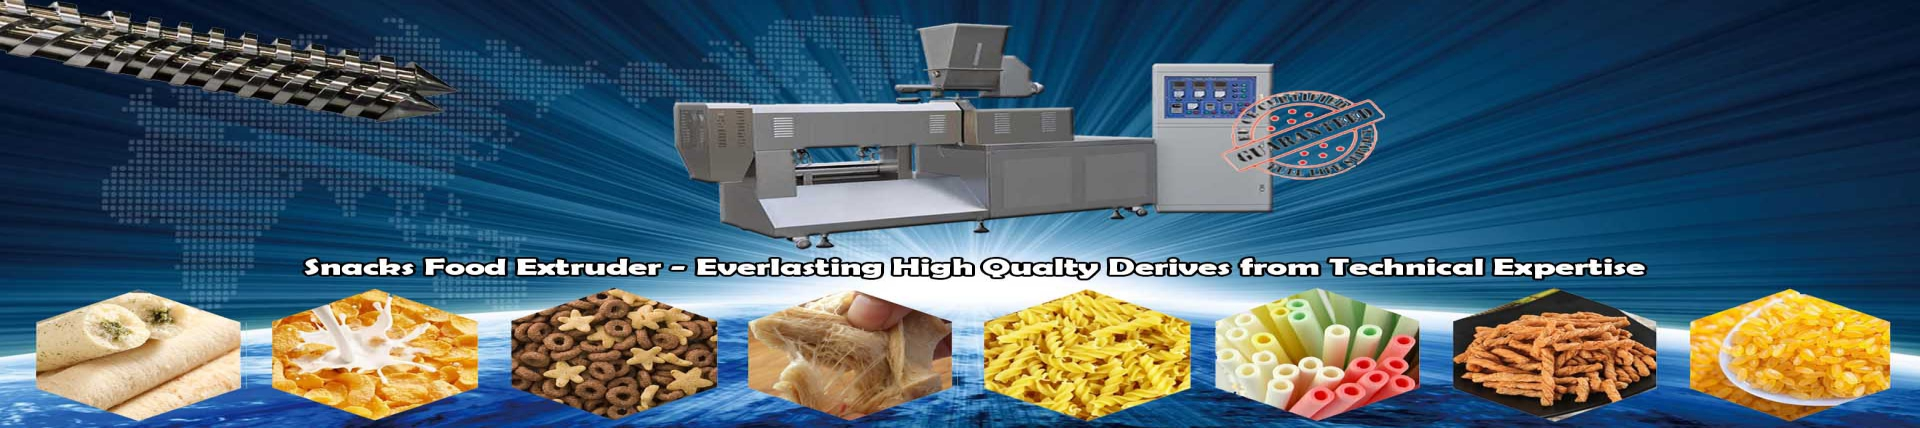 Food Extruder Machine